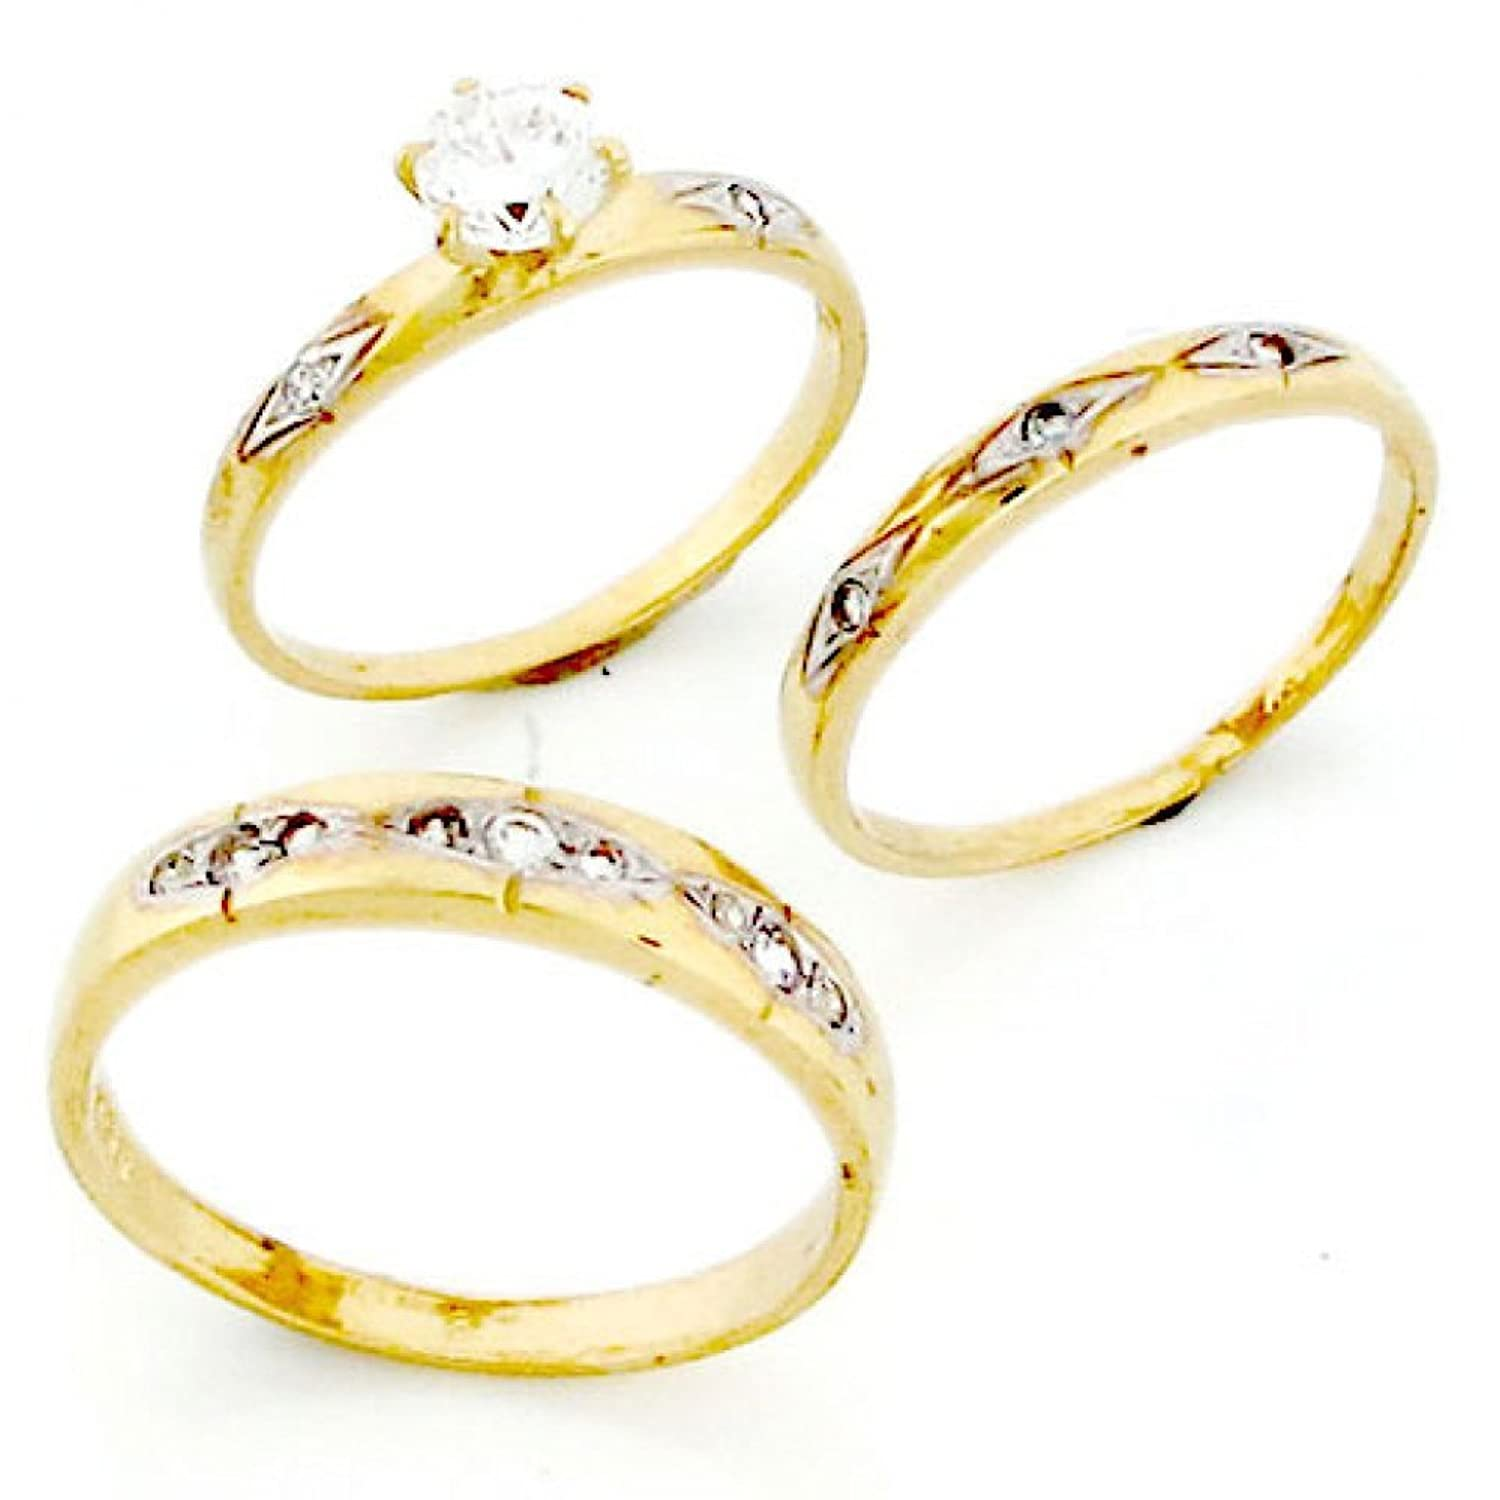 ring yellow s diamond room horse gold property l men mens size rings ctw